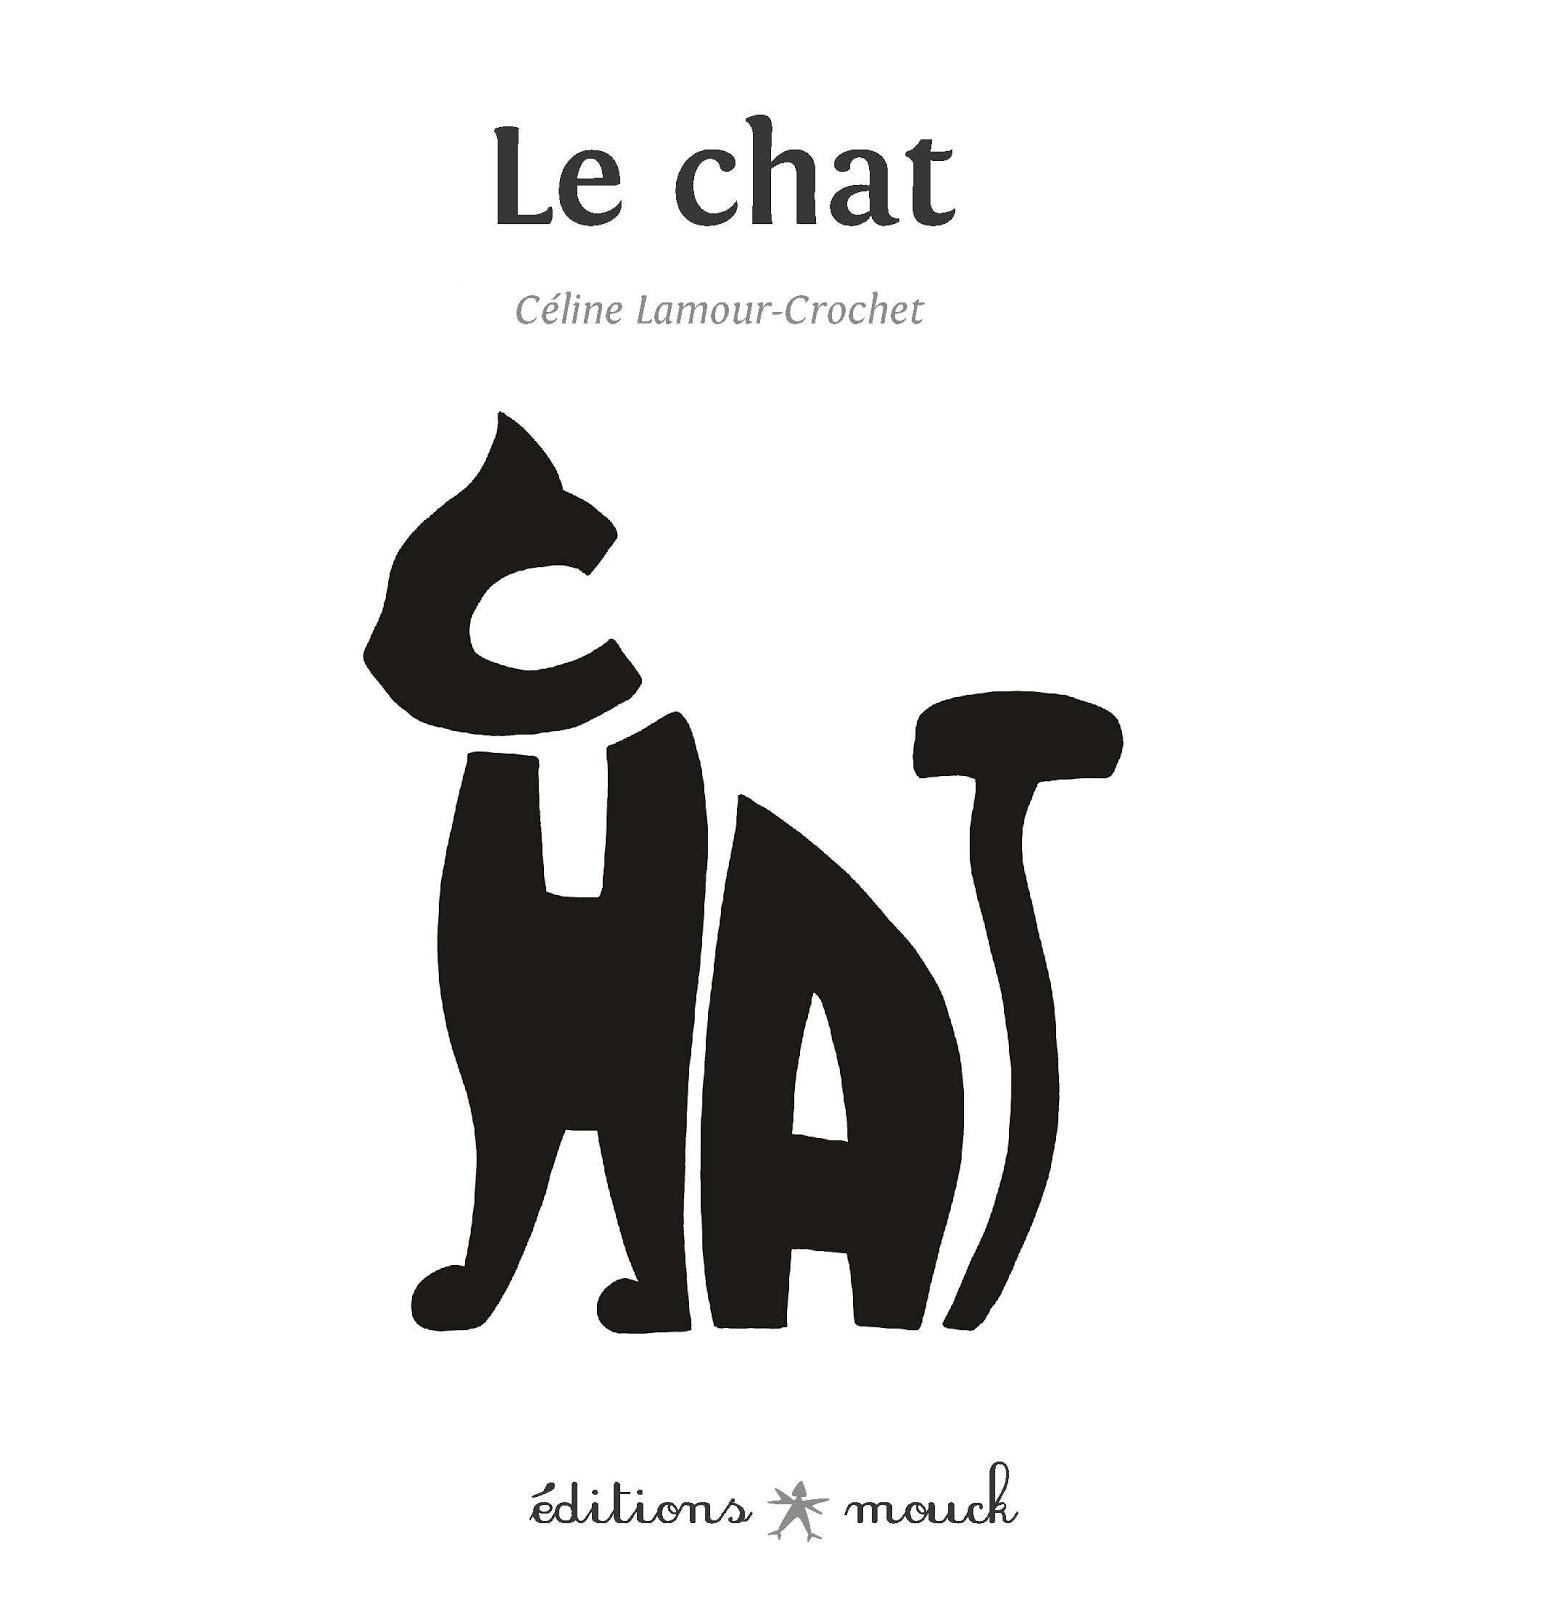 Le chat